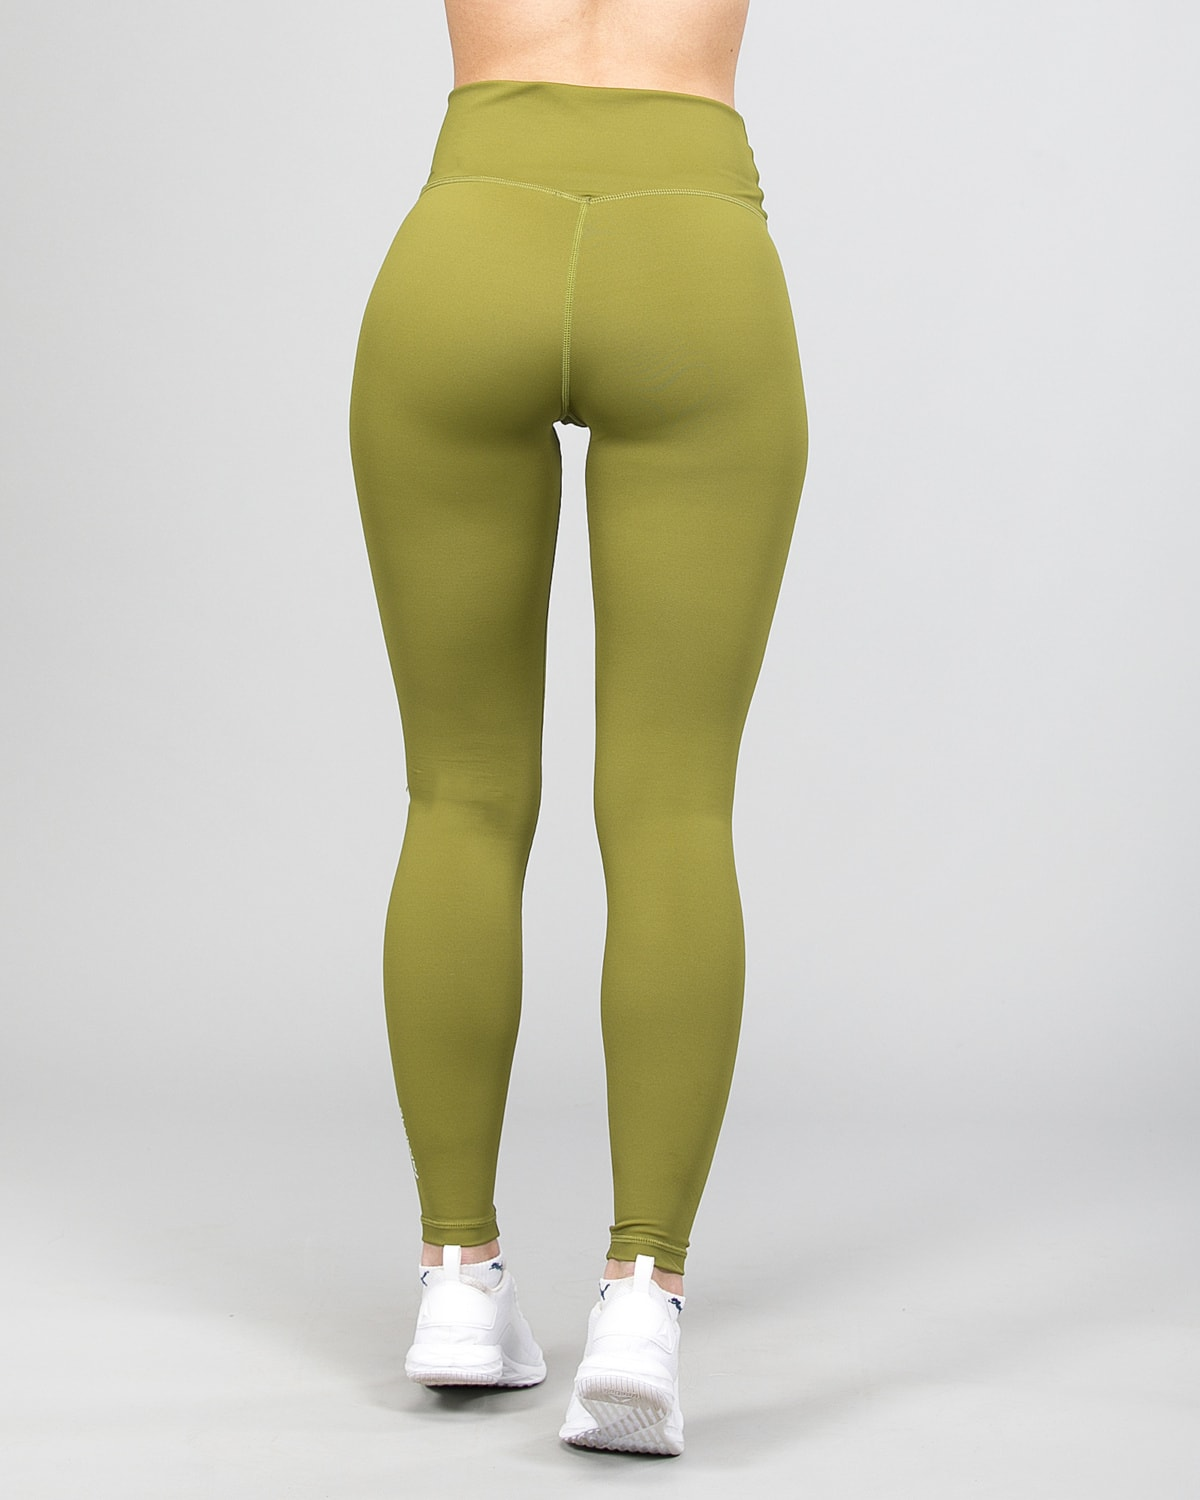 Famme Essential High Waist Legging – Forest Green ehwt-fg e